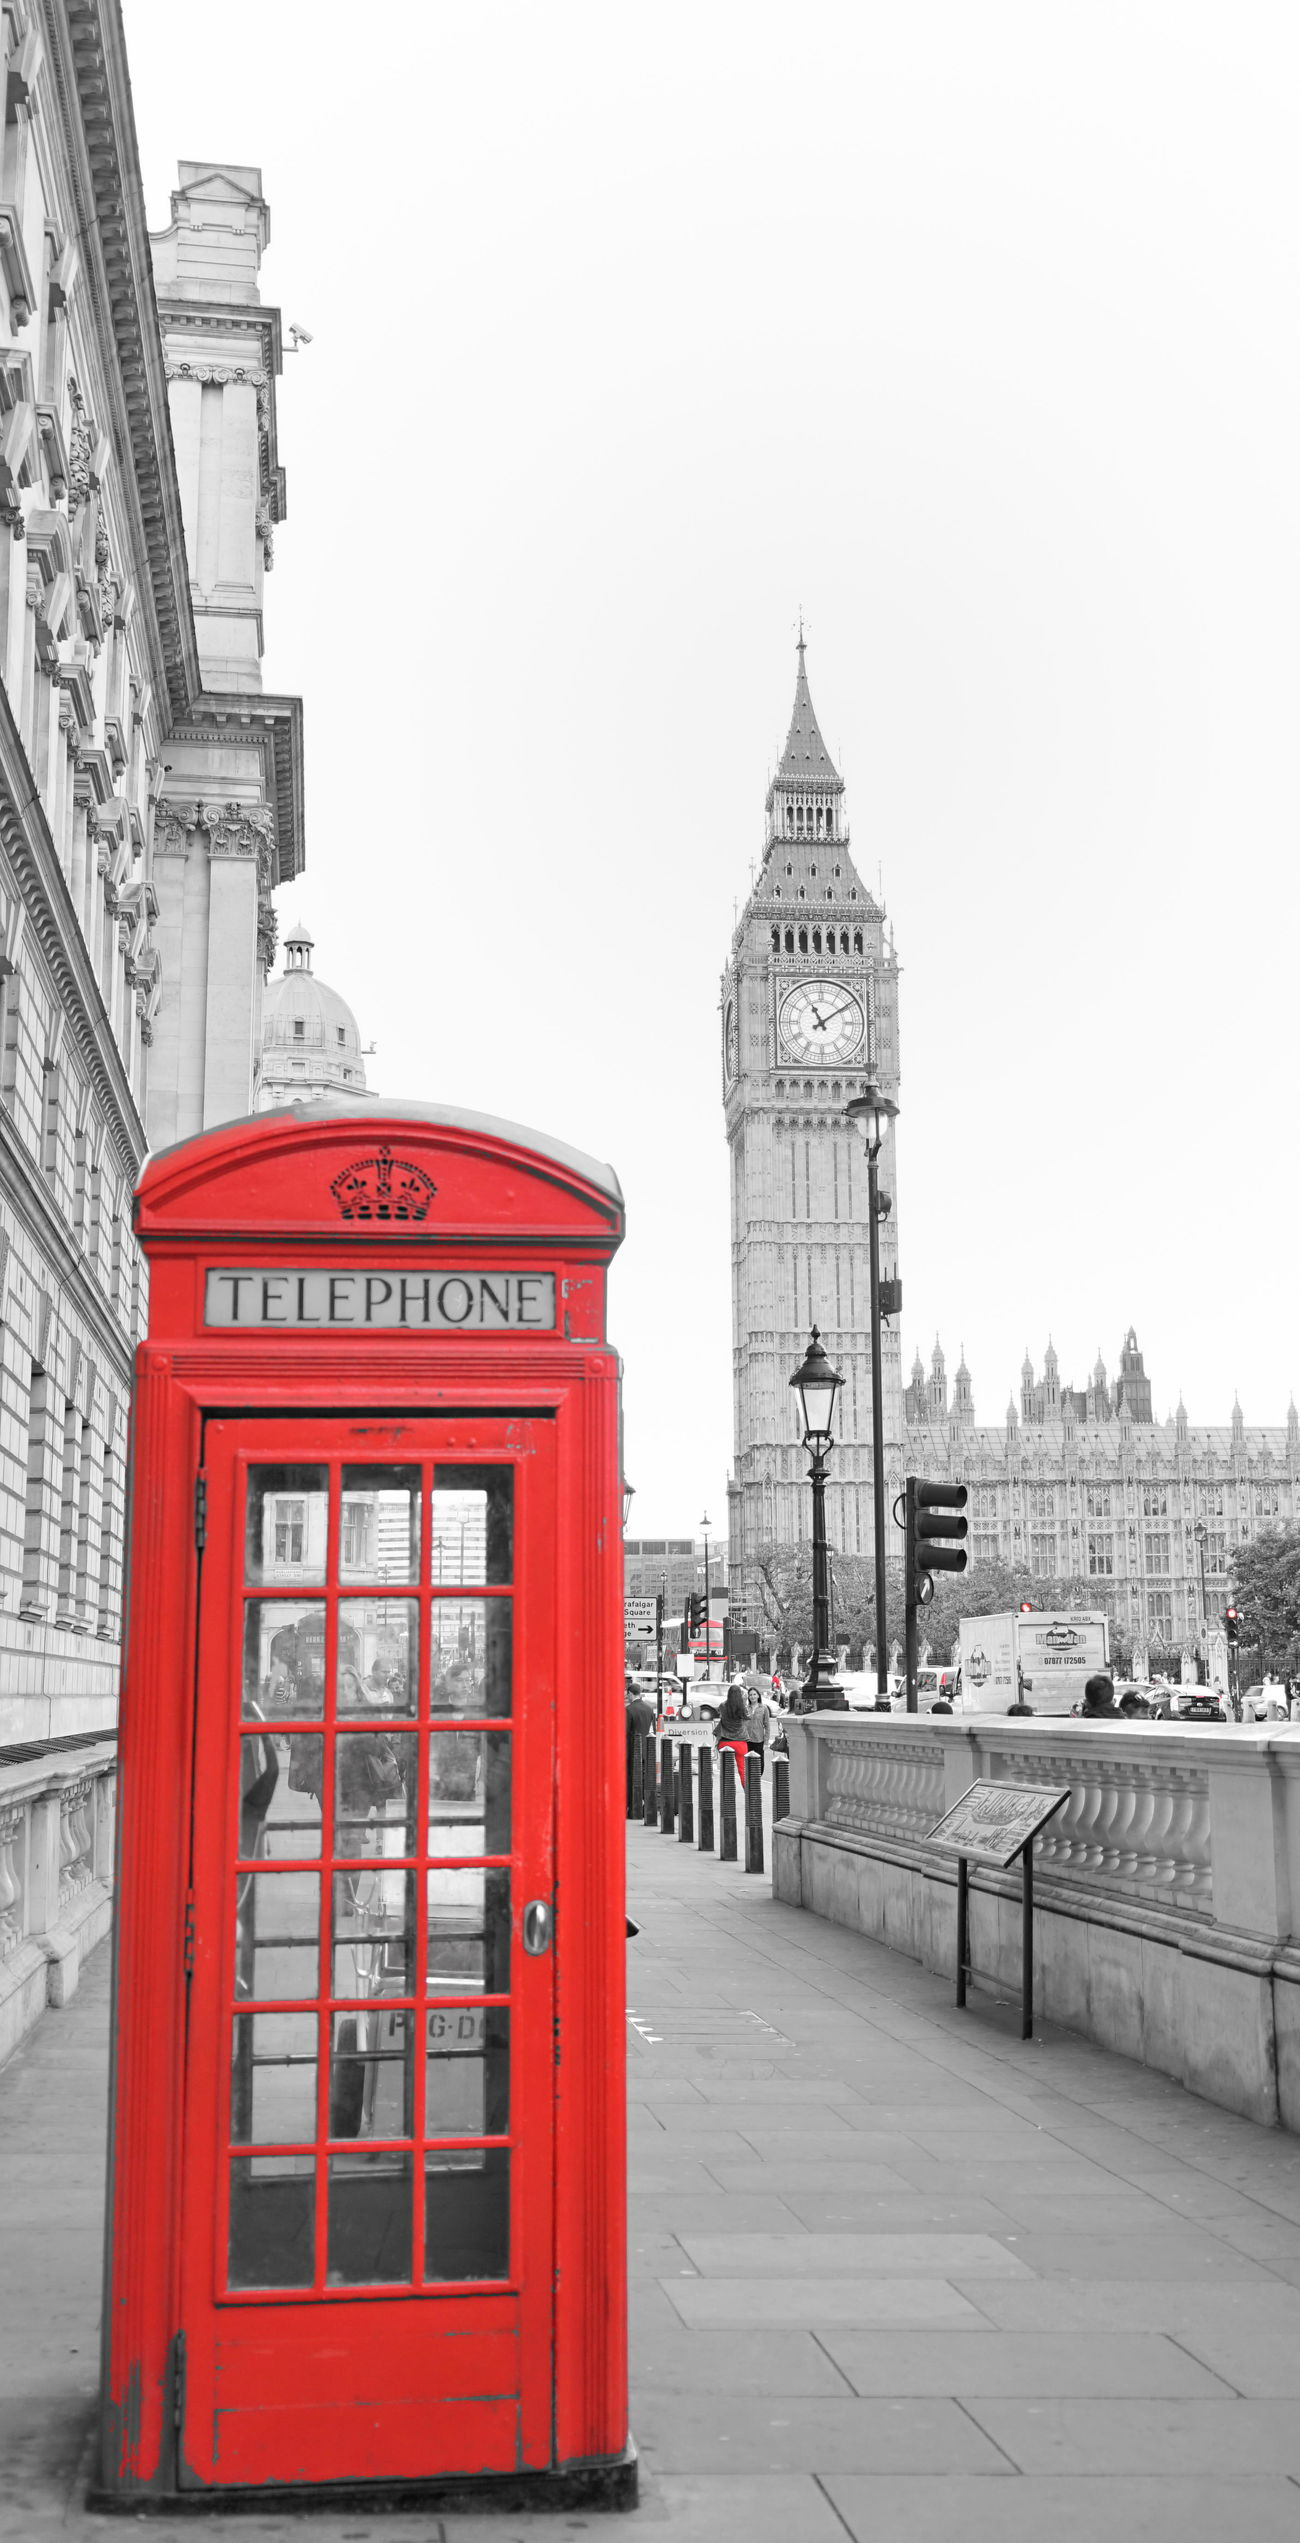 England🇬🇧 LONDON❤ Cityscape Red Telephone Box Photography Black & White 英伦 伦敦 市景 黑白 电话亭 The Street Photographer - 2016 EyeEm Awards The Architect - 2016 EyeEm Awards